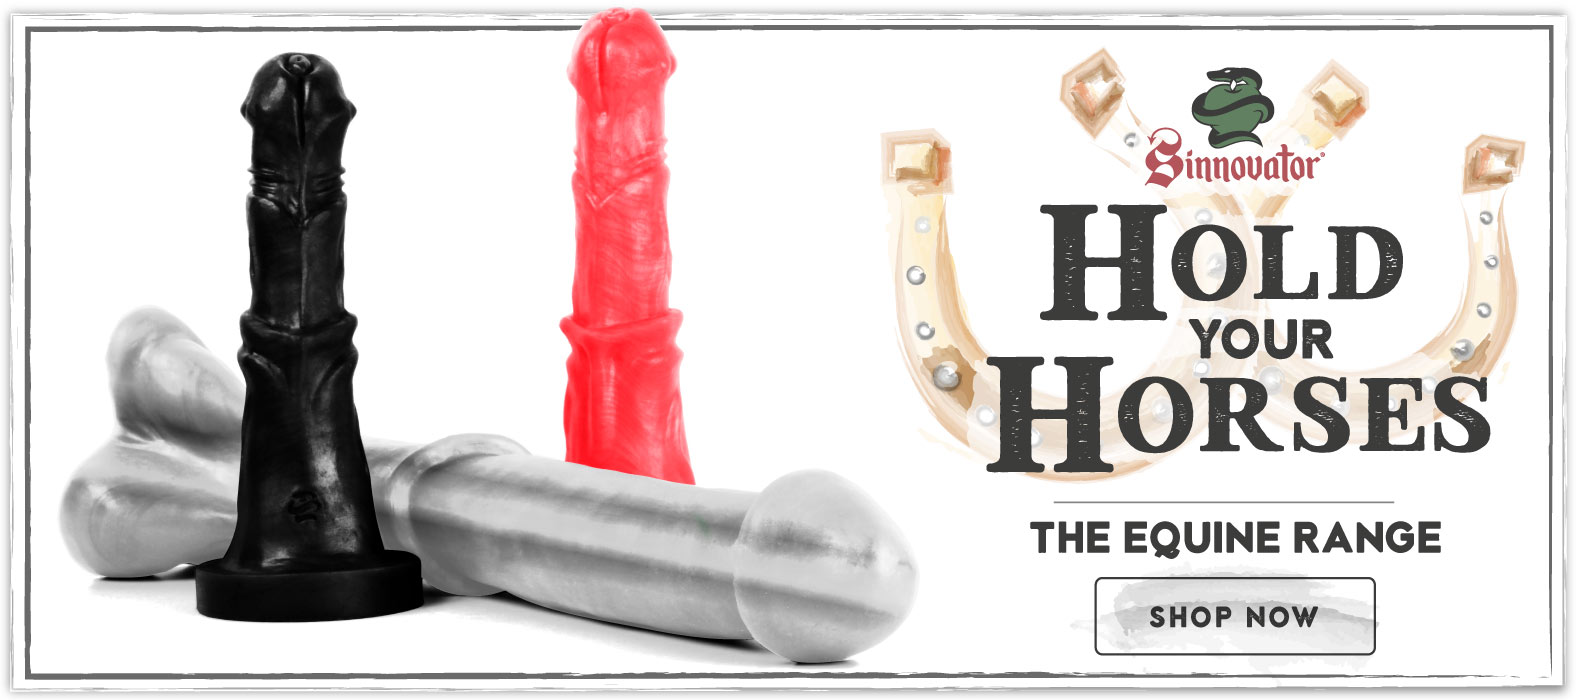 Horse Sex Toy Range from Sinnovator